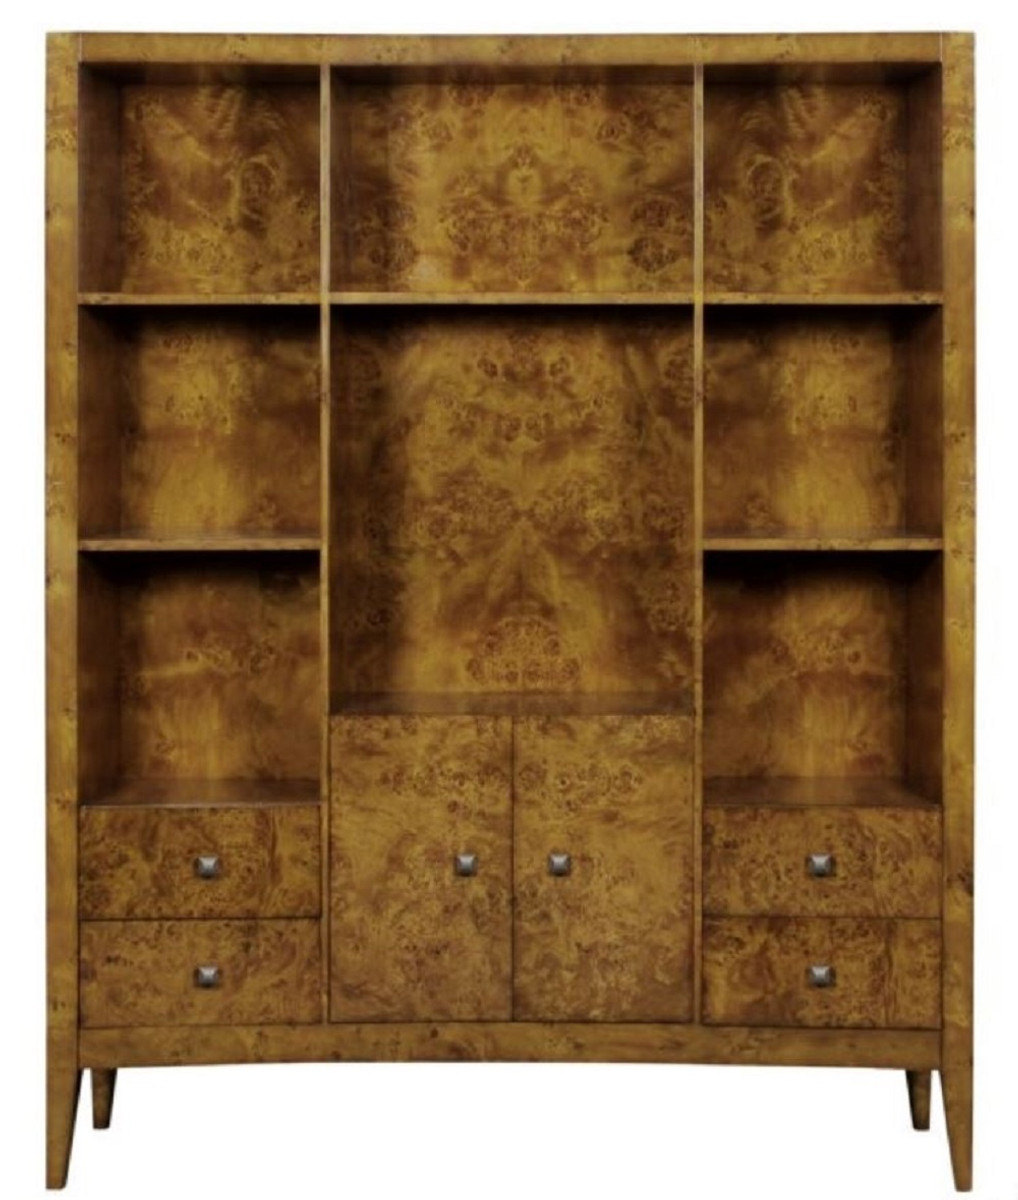 Casa Padrino Luxury Bookcase With 2 Doors And 4 Drawers